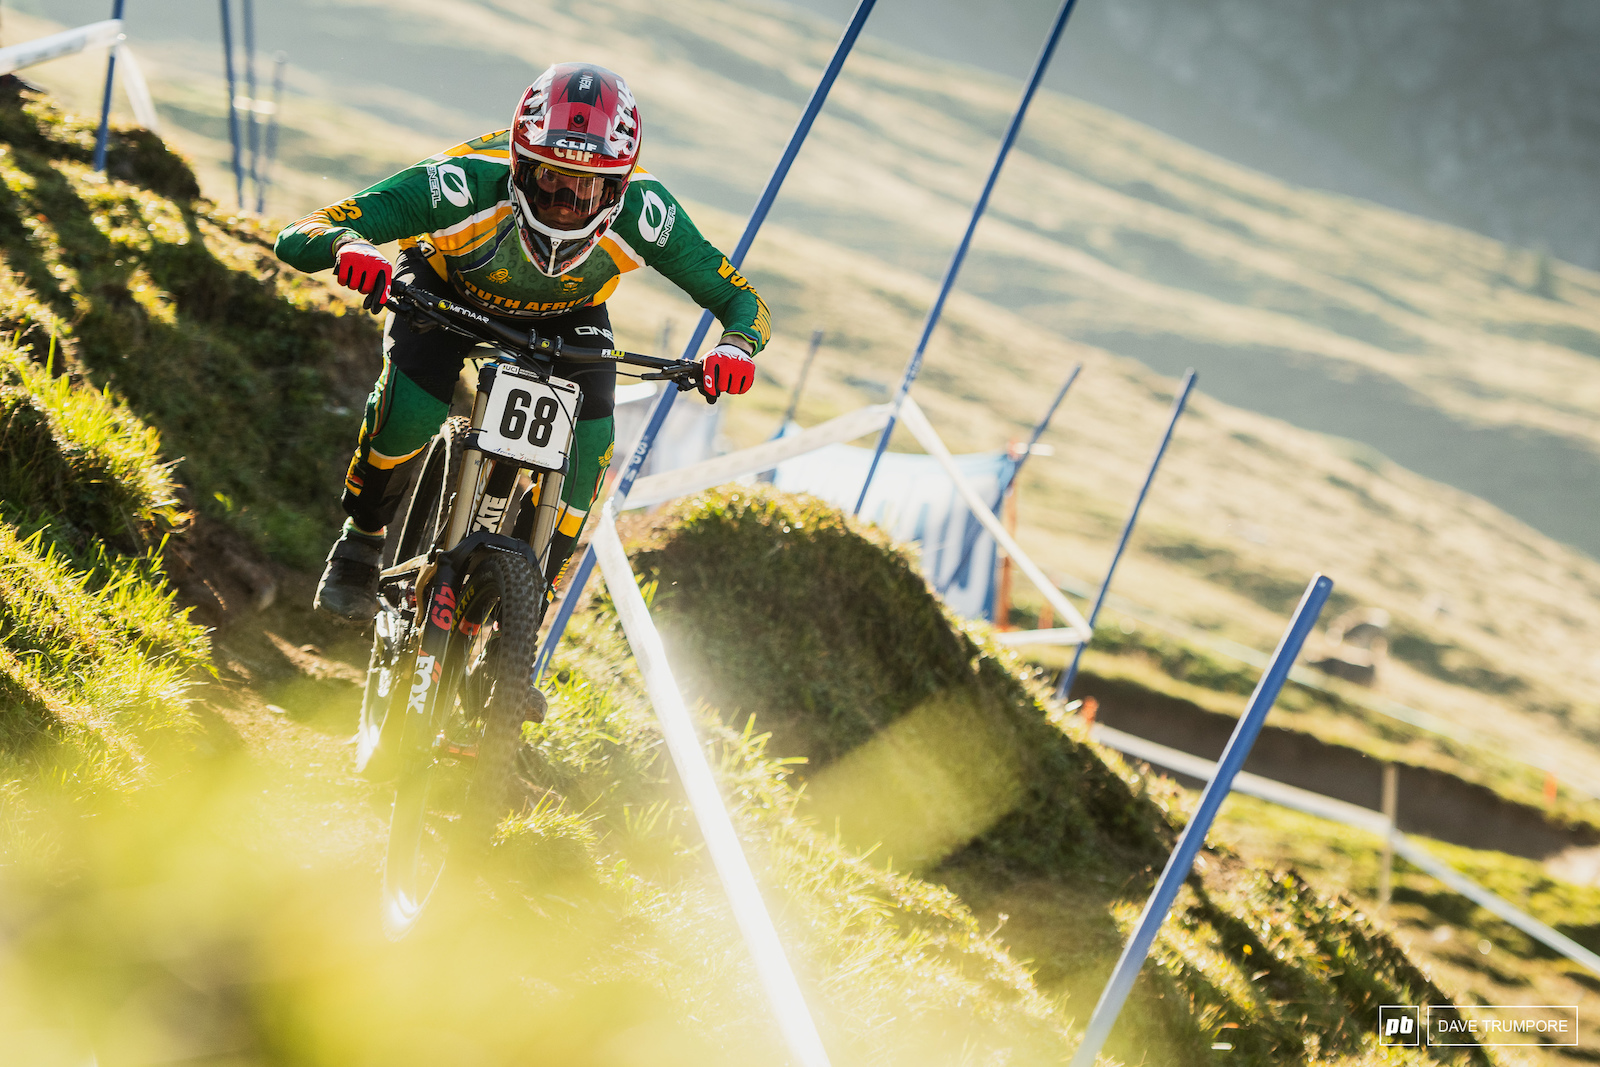 Greg Minnaar had a strong race today to finish just over 2 seconds out of the medals.